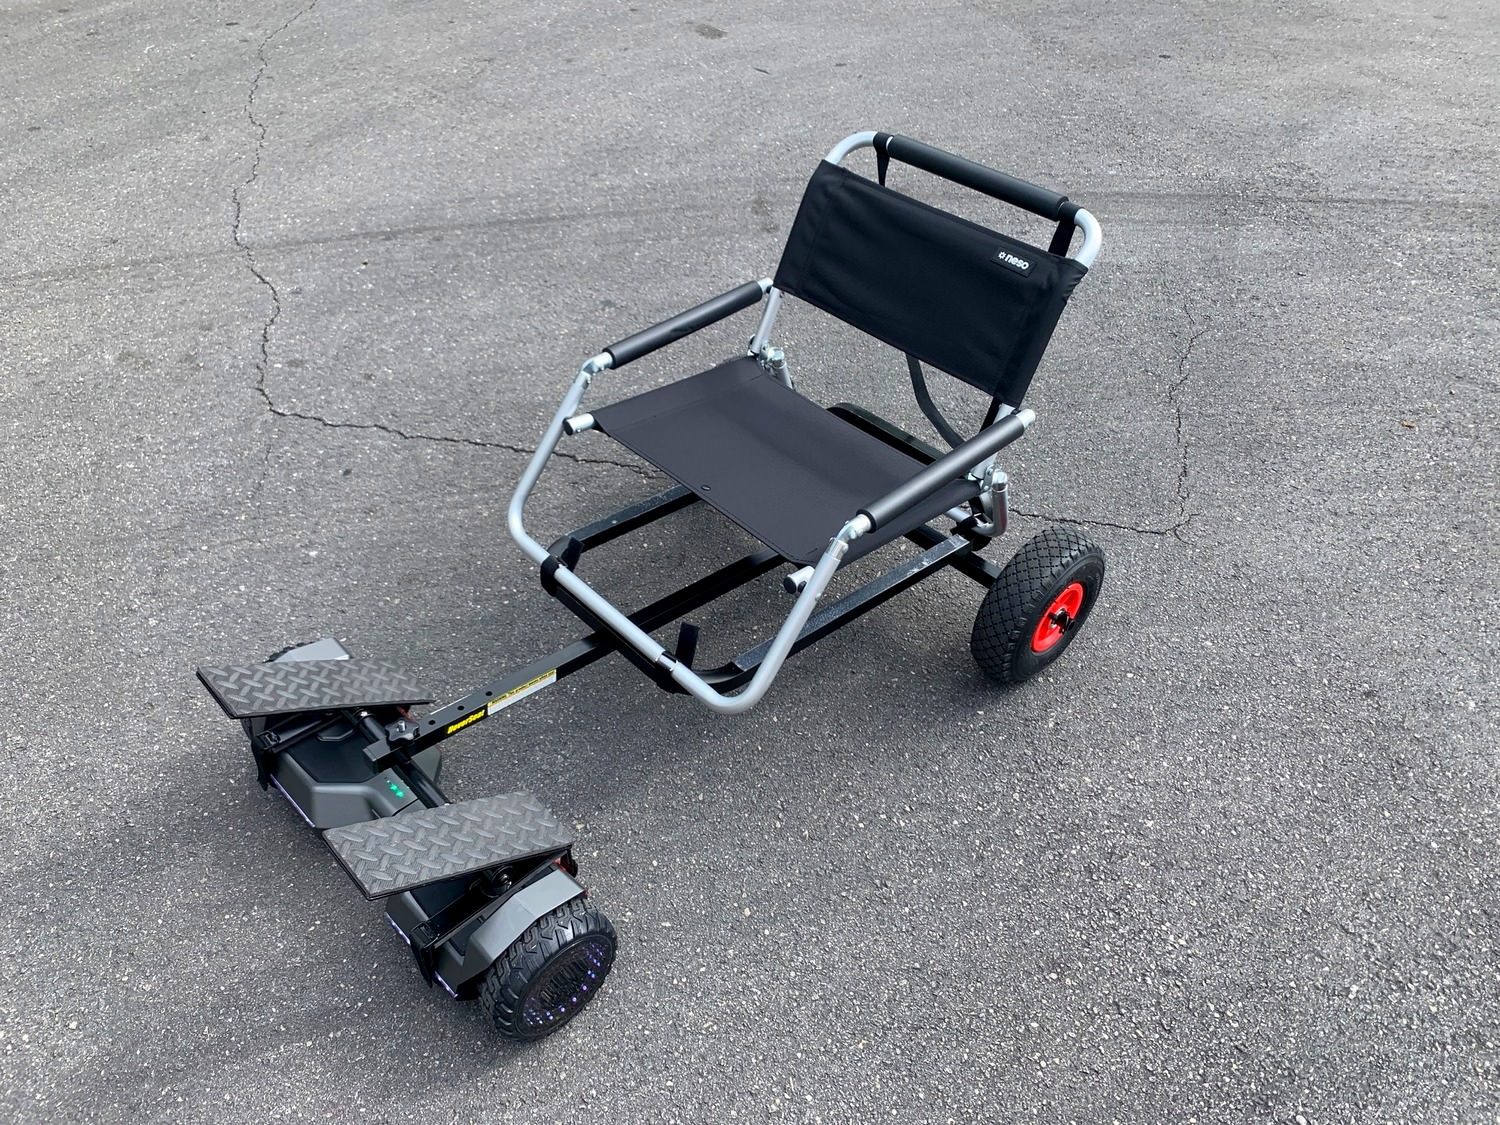 HoverSeat with folding chair